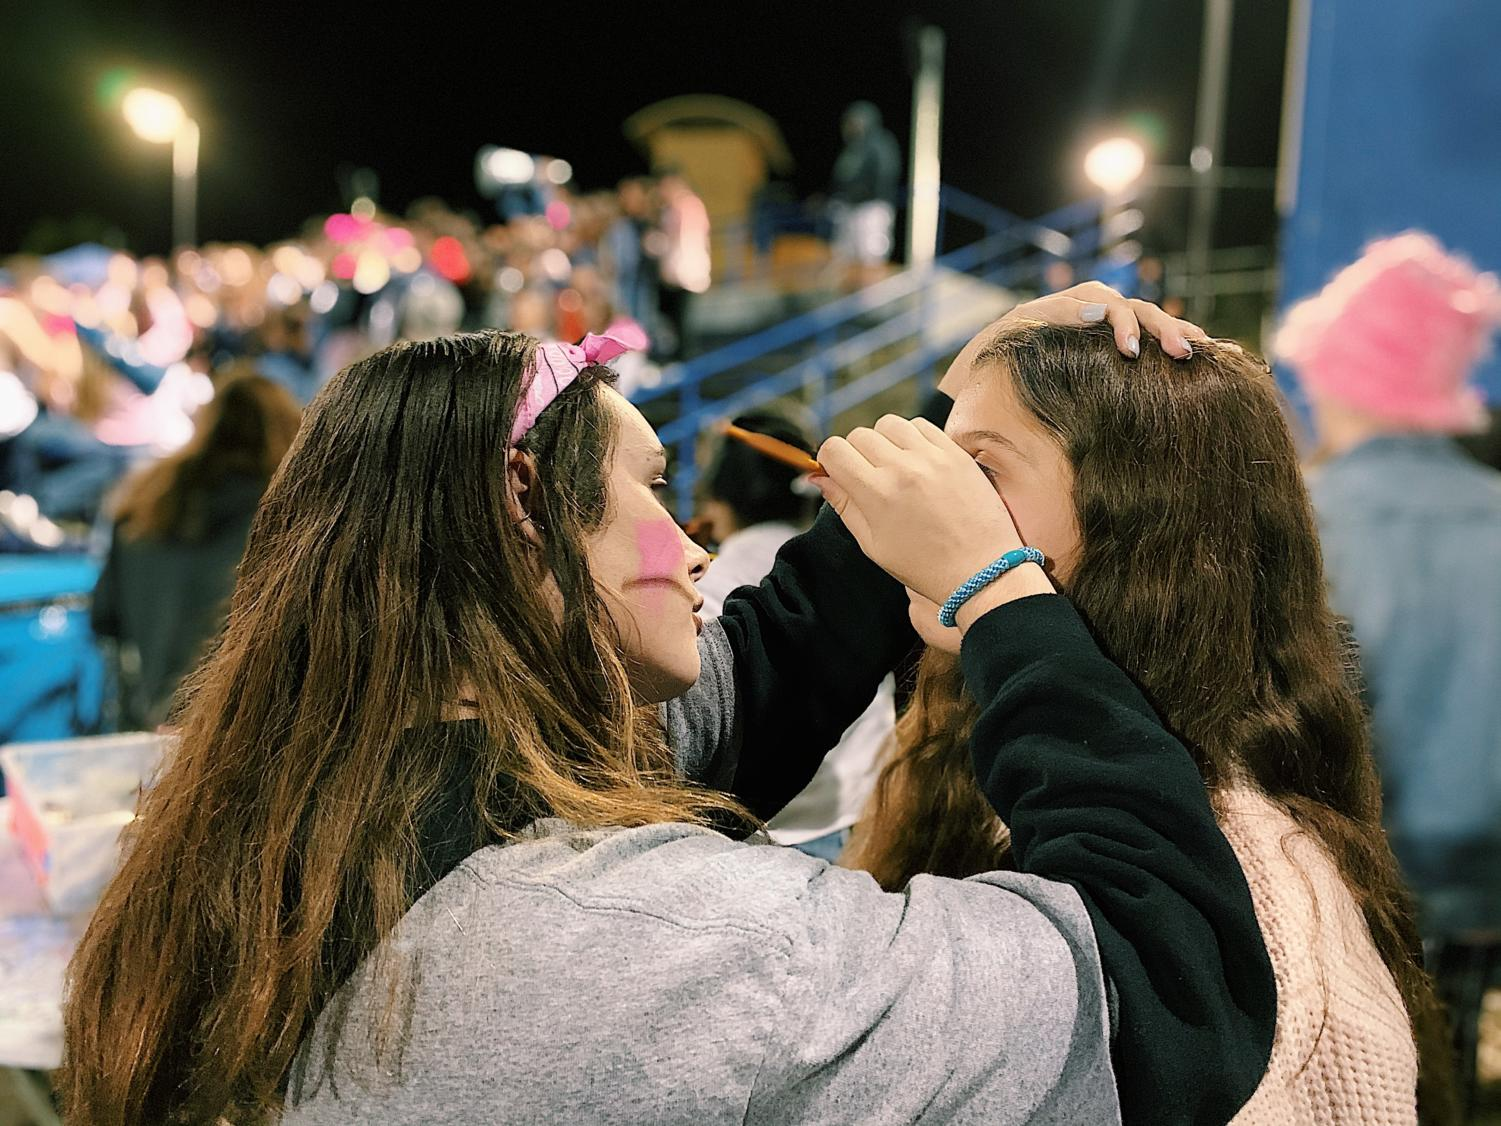 At the football game, a student gets her face painted pink in honor of Breast Cancer Awareness week.